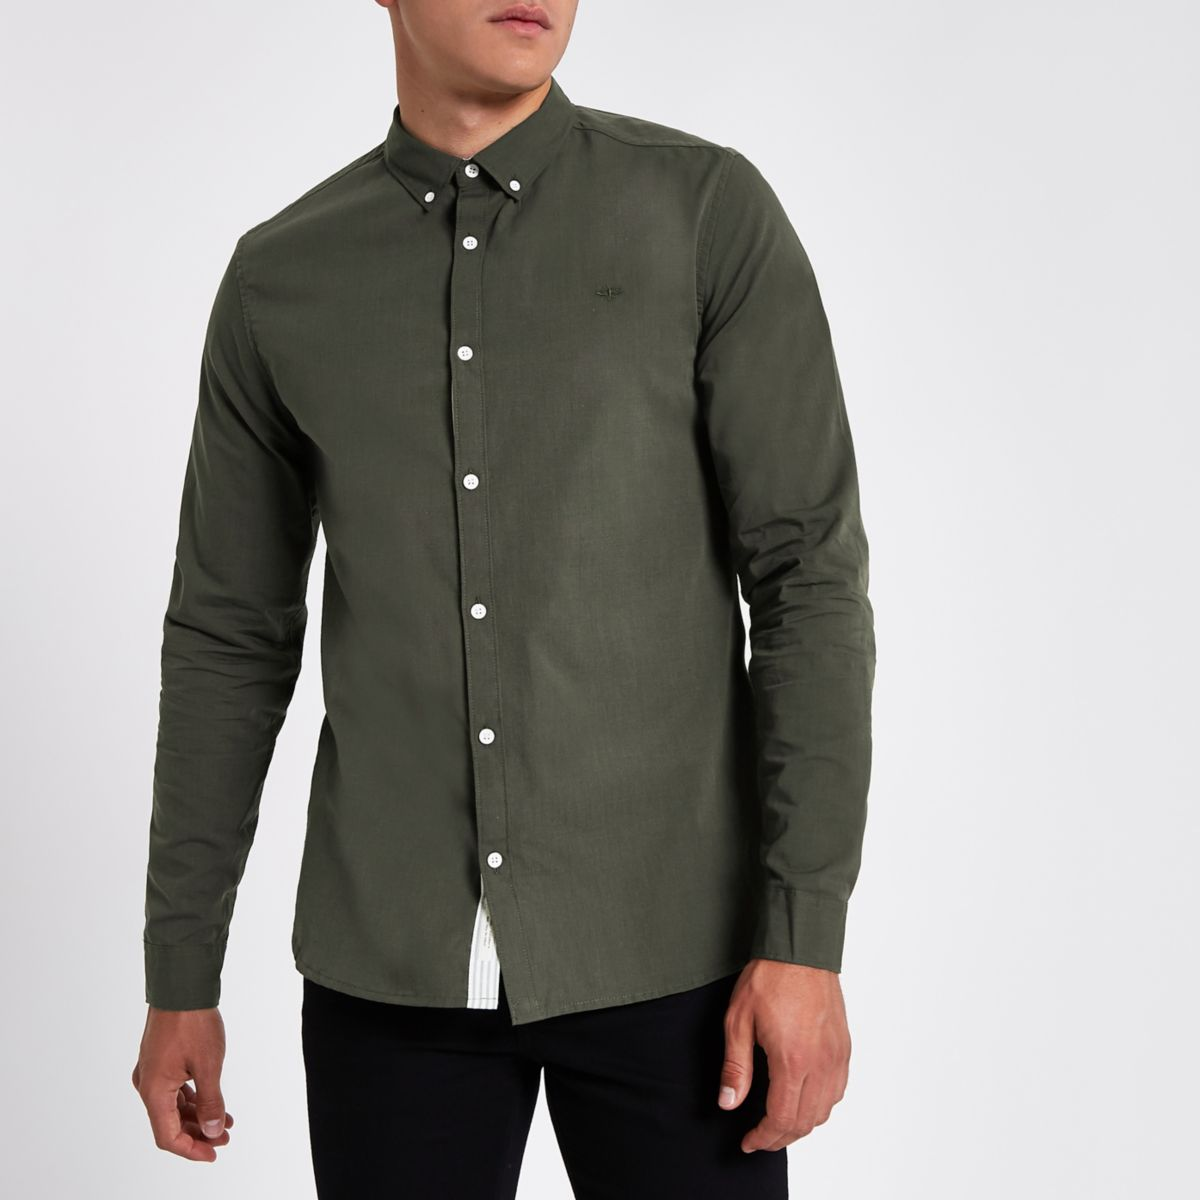 Khaki green slim fit button-down shirt